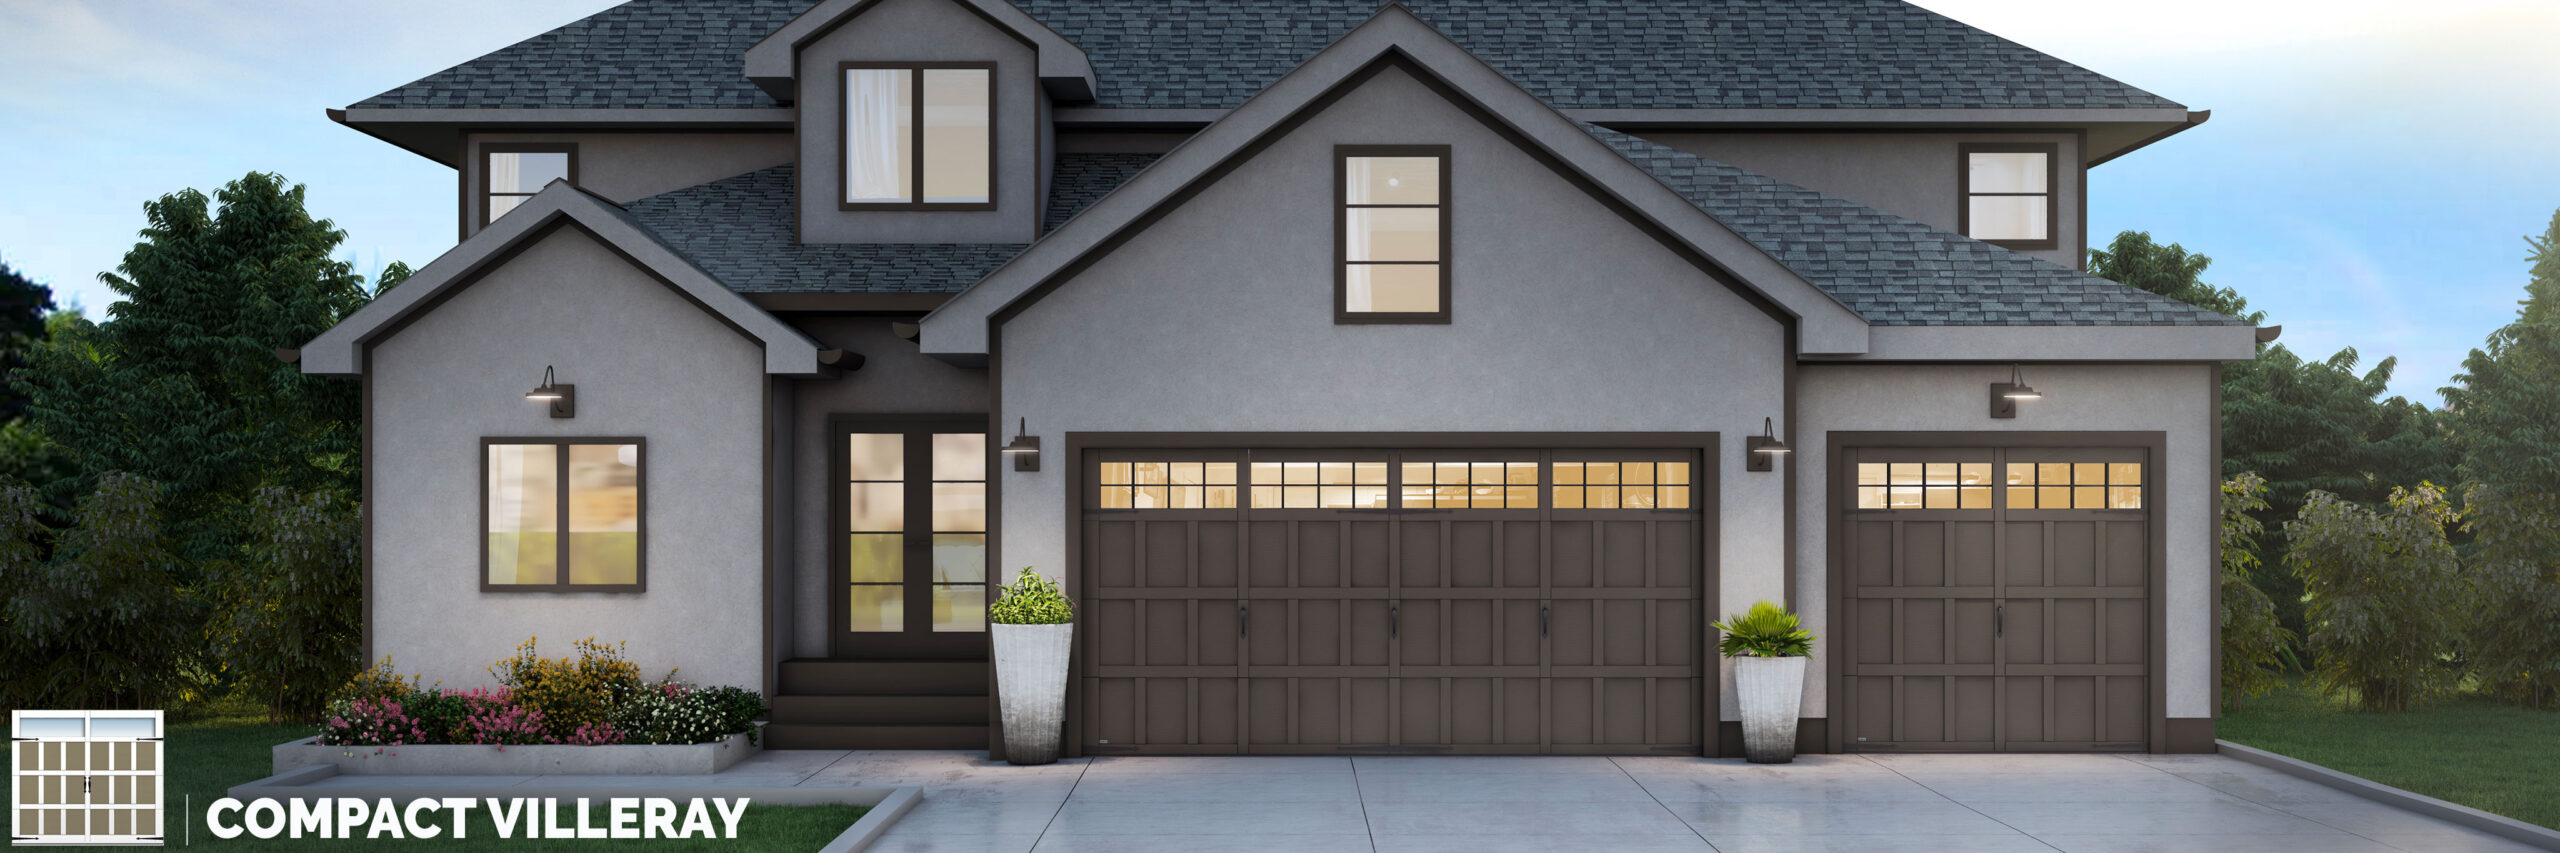 compact villeray carriage house style garage door by garex scaled